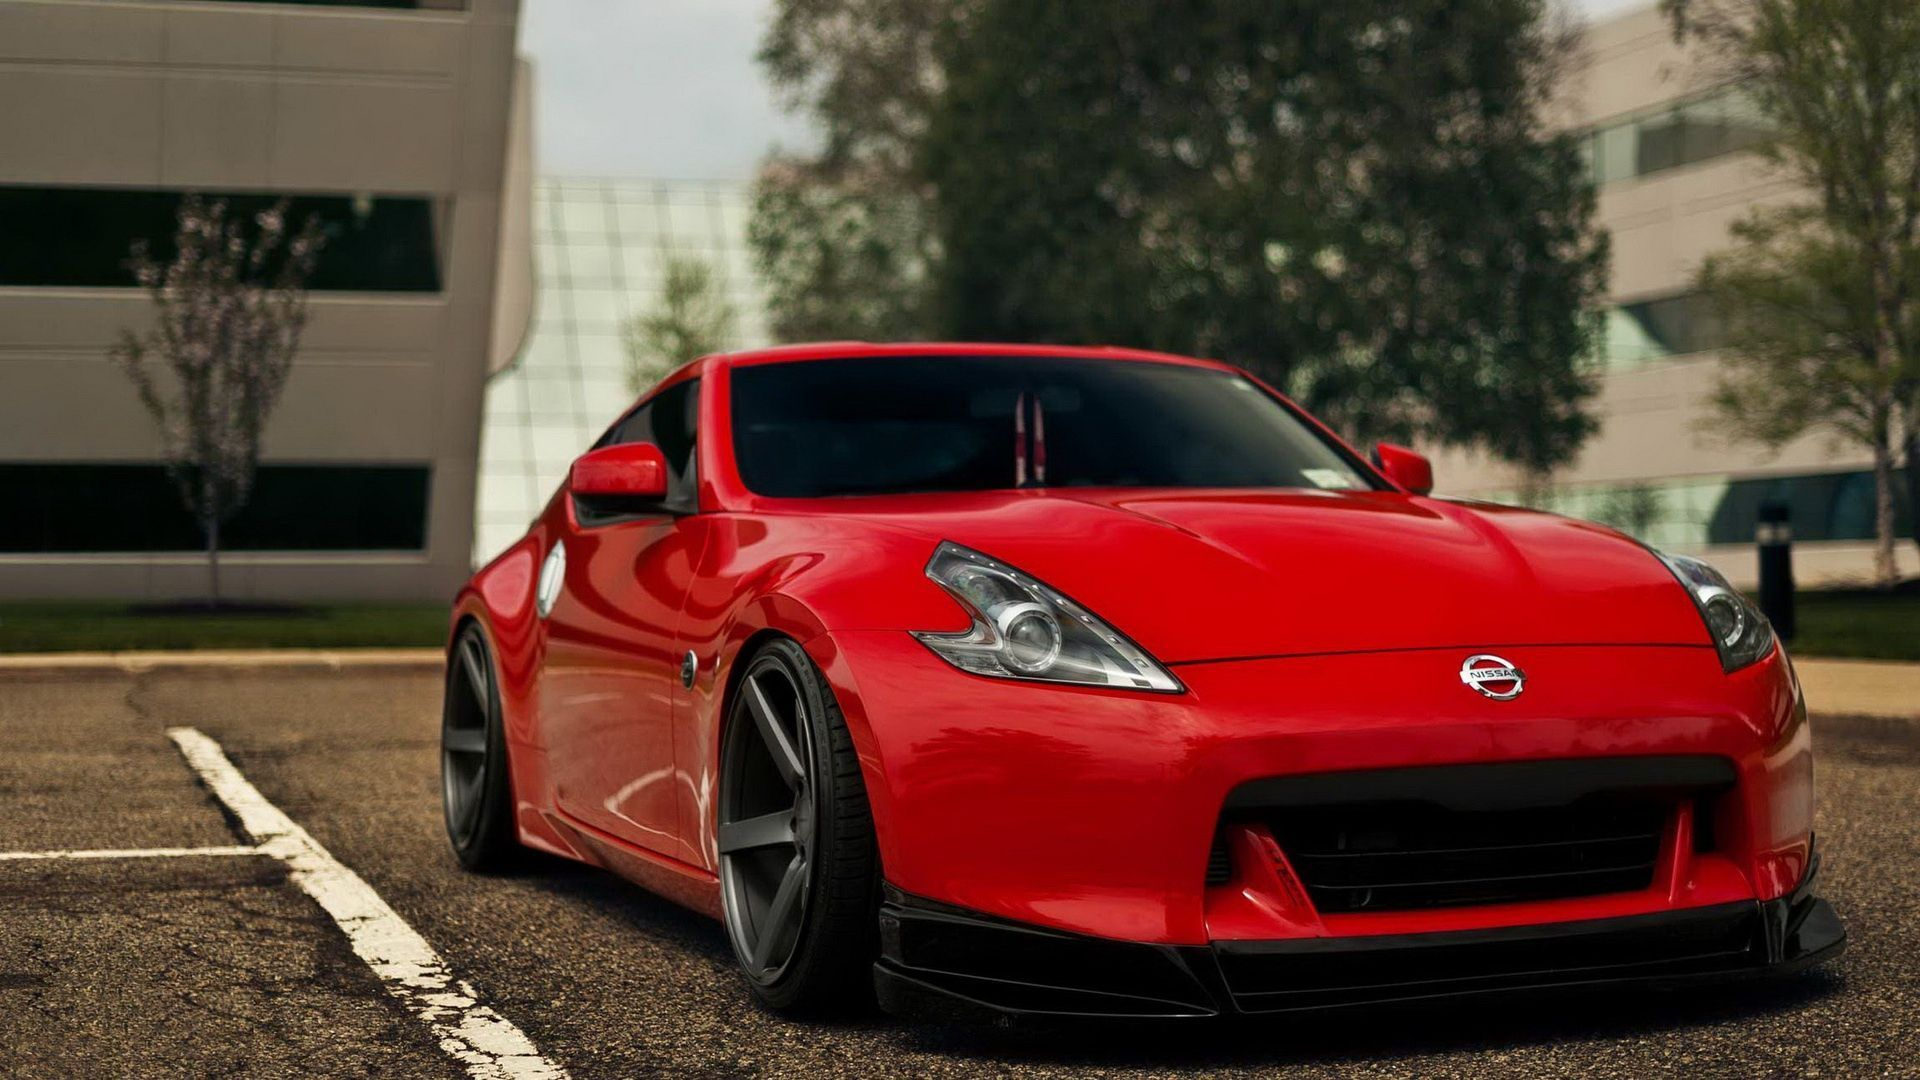 Ordinaire Nissan 370z Nismo 4K Wallpaper  Https://free4kwallpapers.com/wallpaper/cars Motorcycles/cars/nissan 370z Nismo 4k/YY7O  | Desktop Wallpapers | Pinterest ...